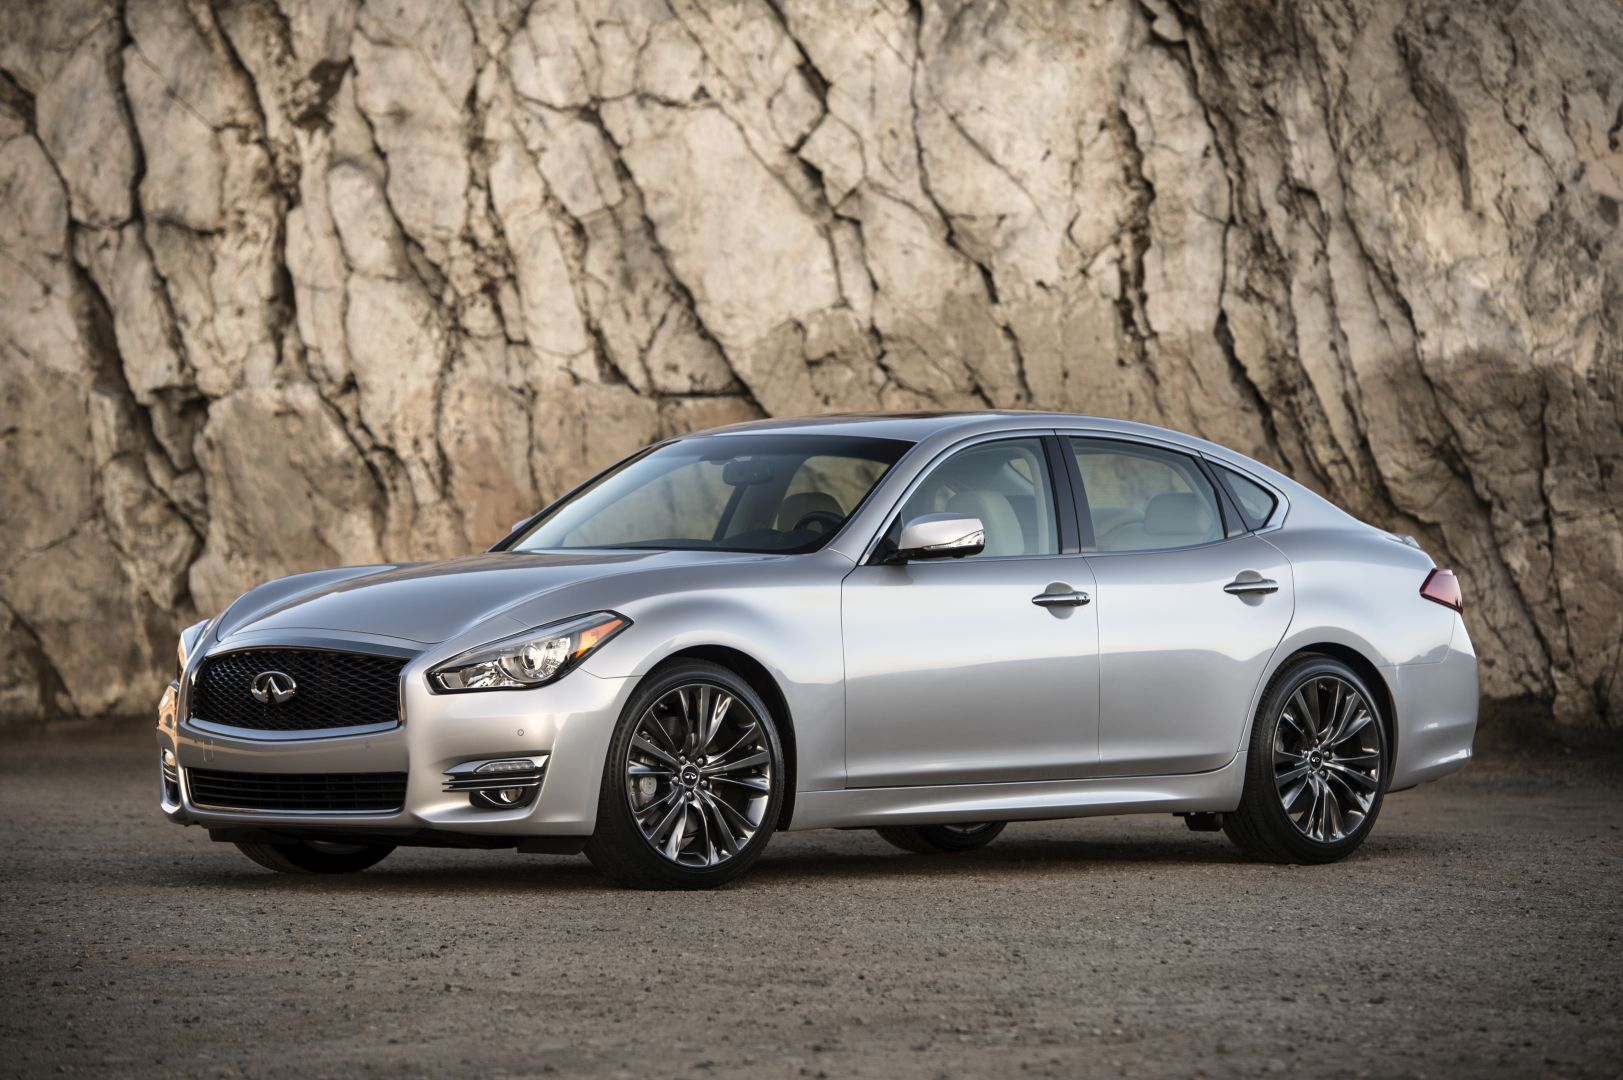 2020 Infiniti Q70 Release Date and Concept